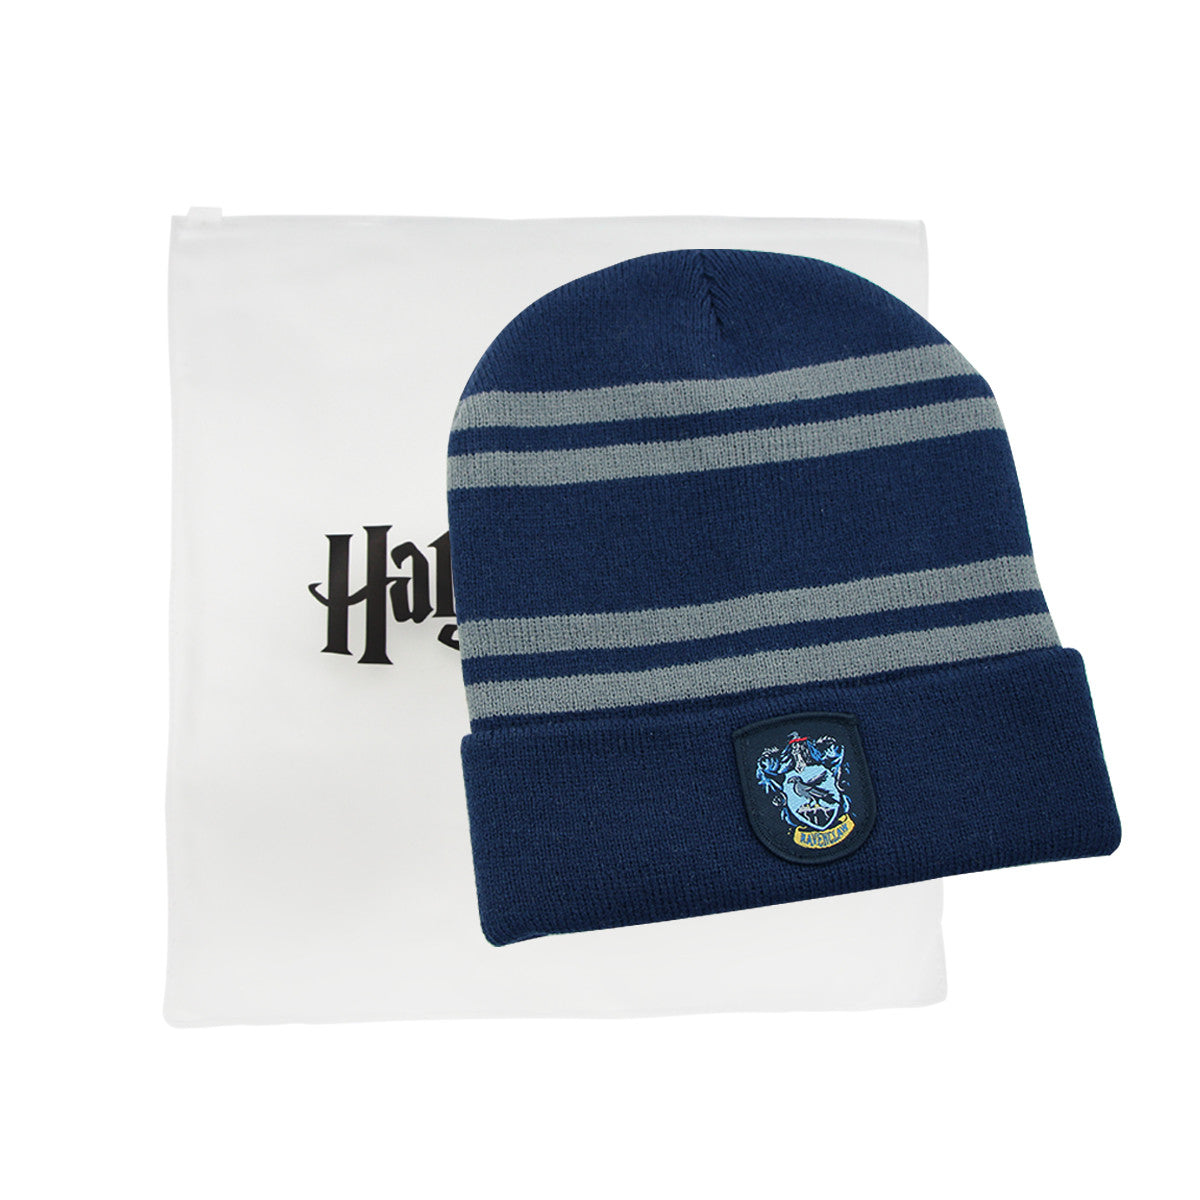 b6bbb8f6a67 Ravenclaw Beanie classic edition packaging harry potter